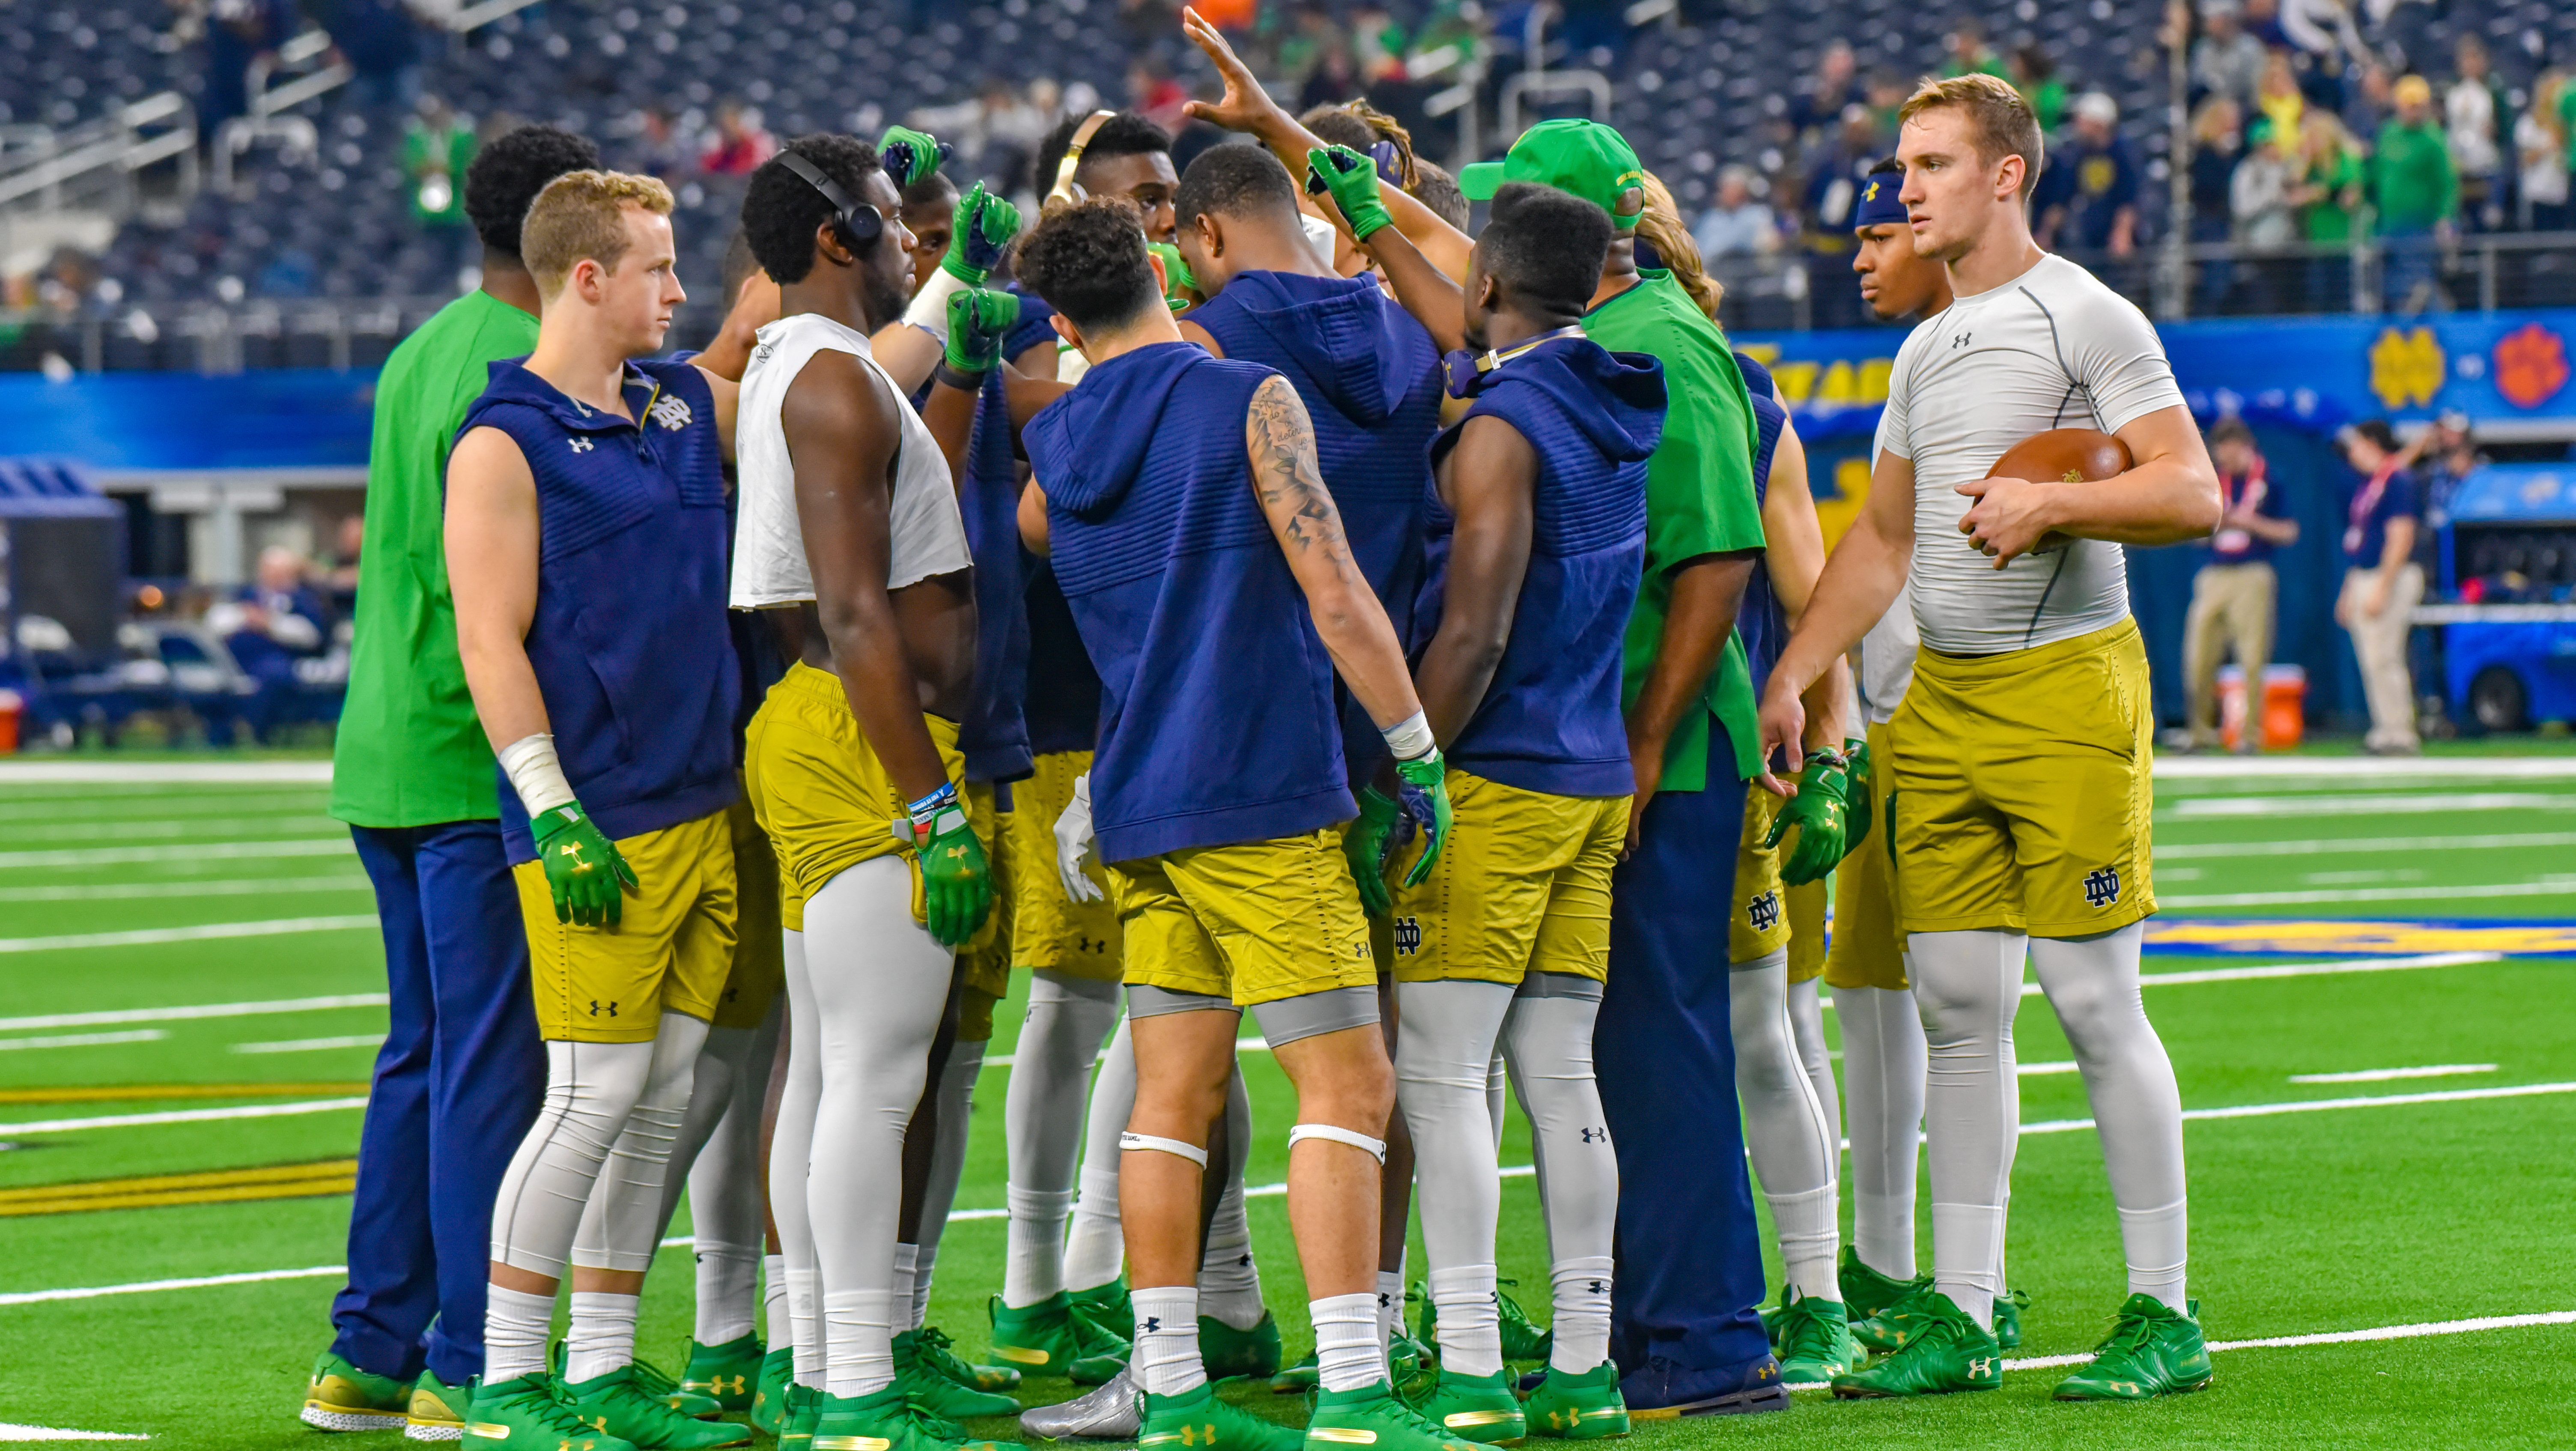 ND Football: Championship Through Team Chemistry